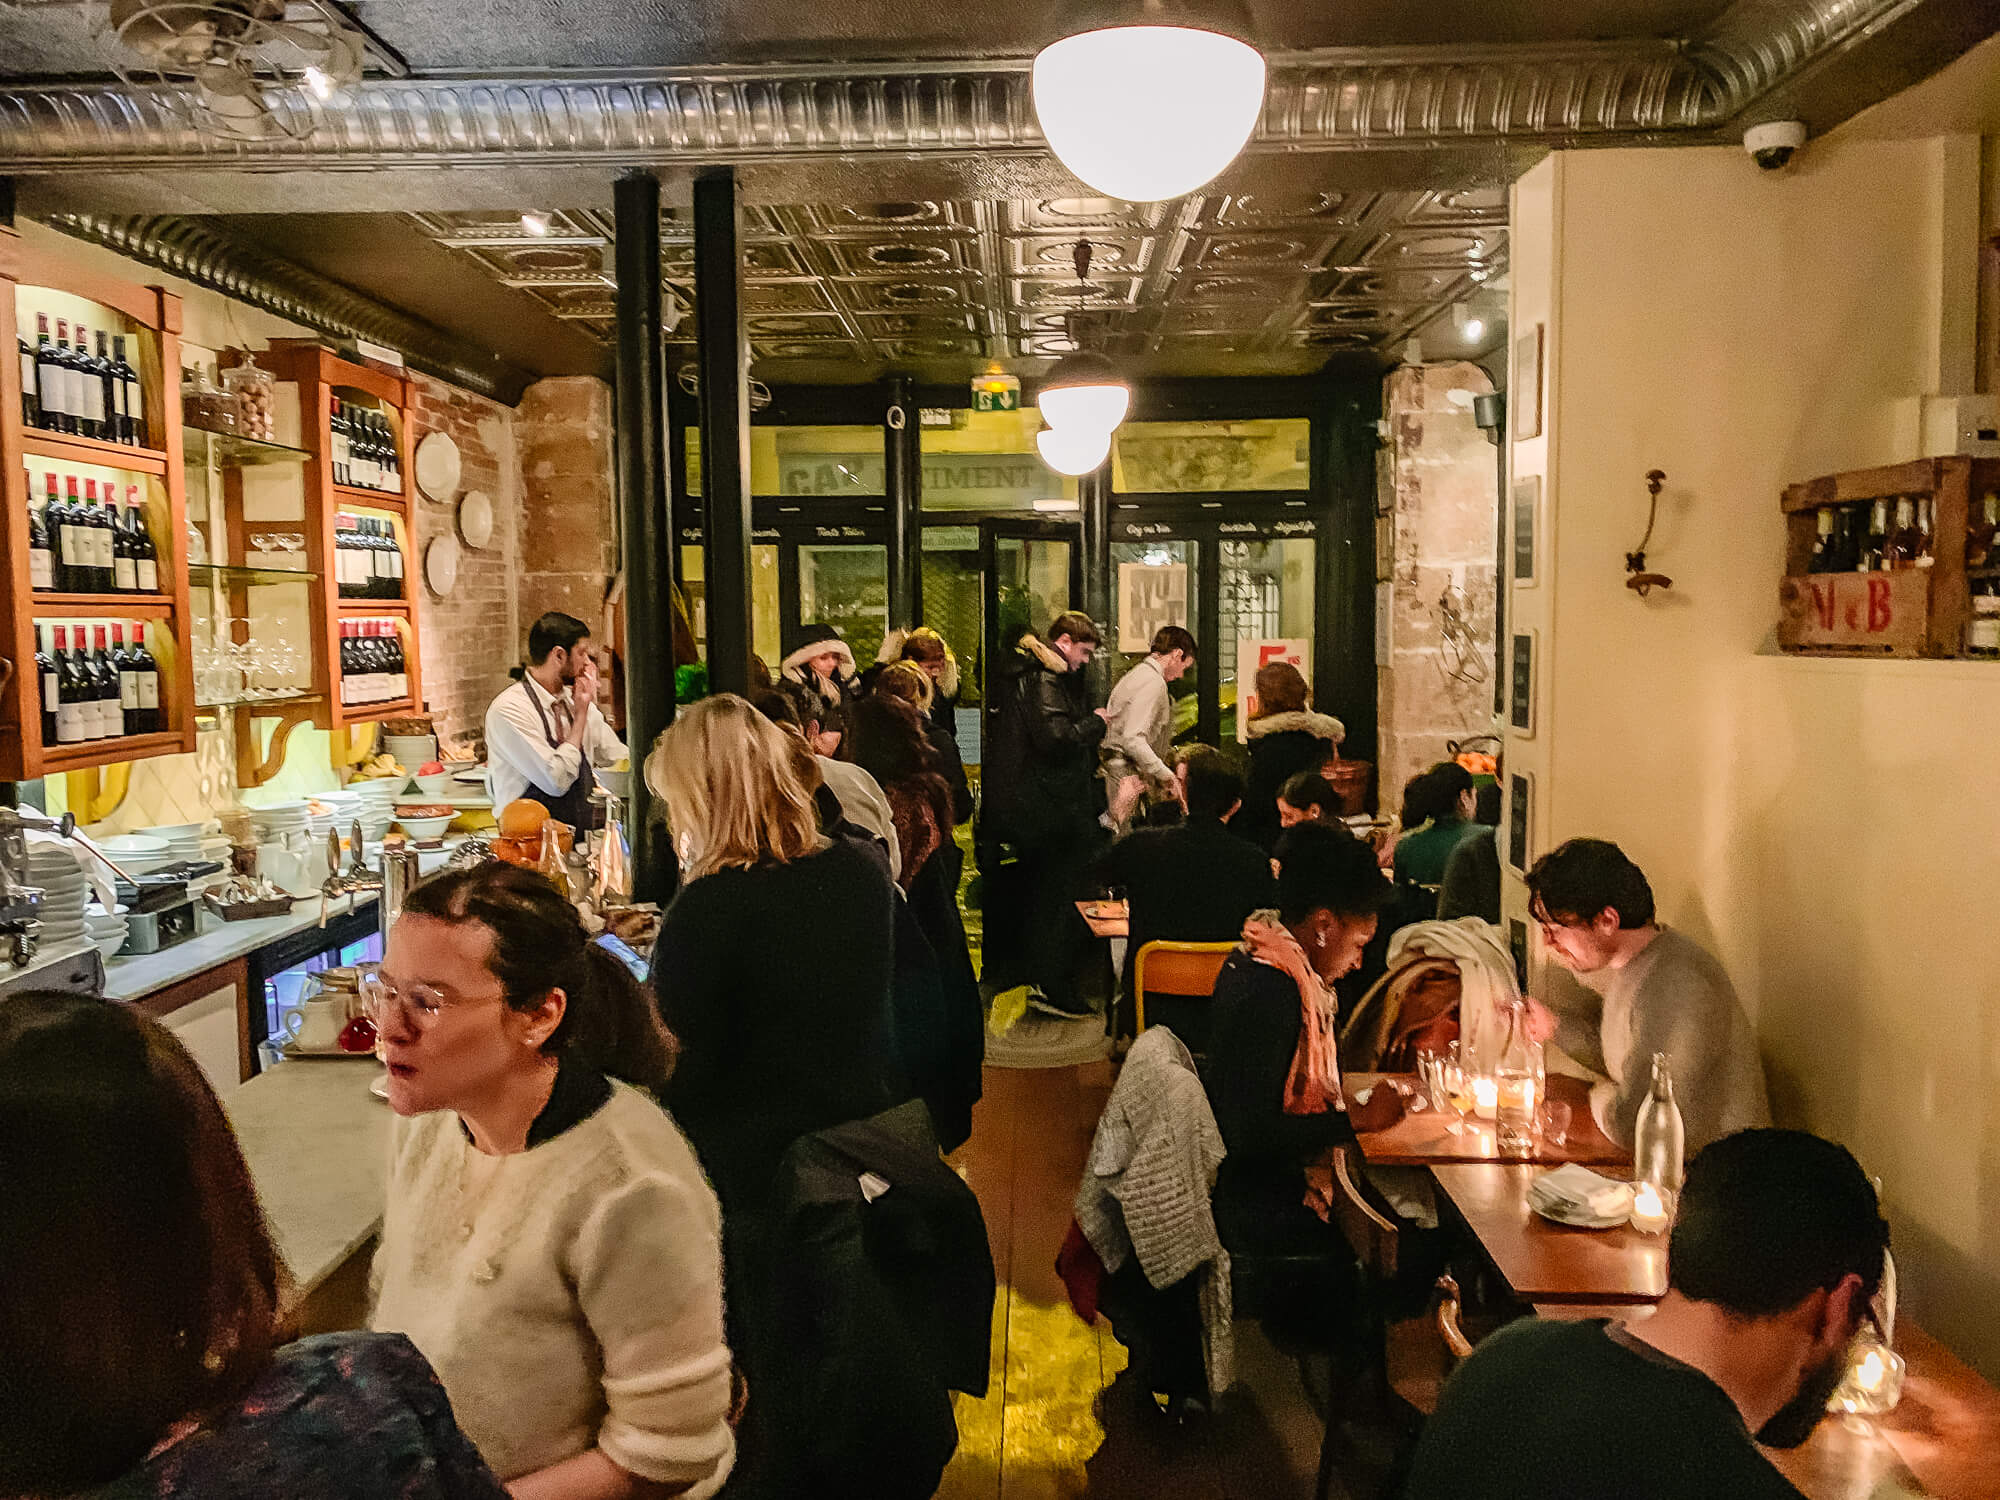 Buvette Paris on a busy night